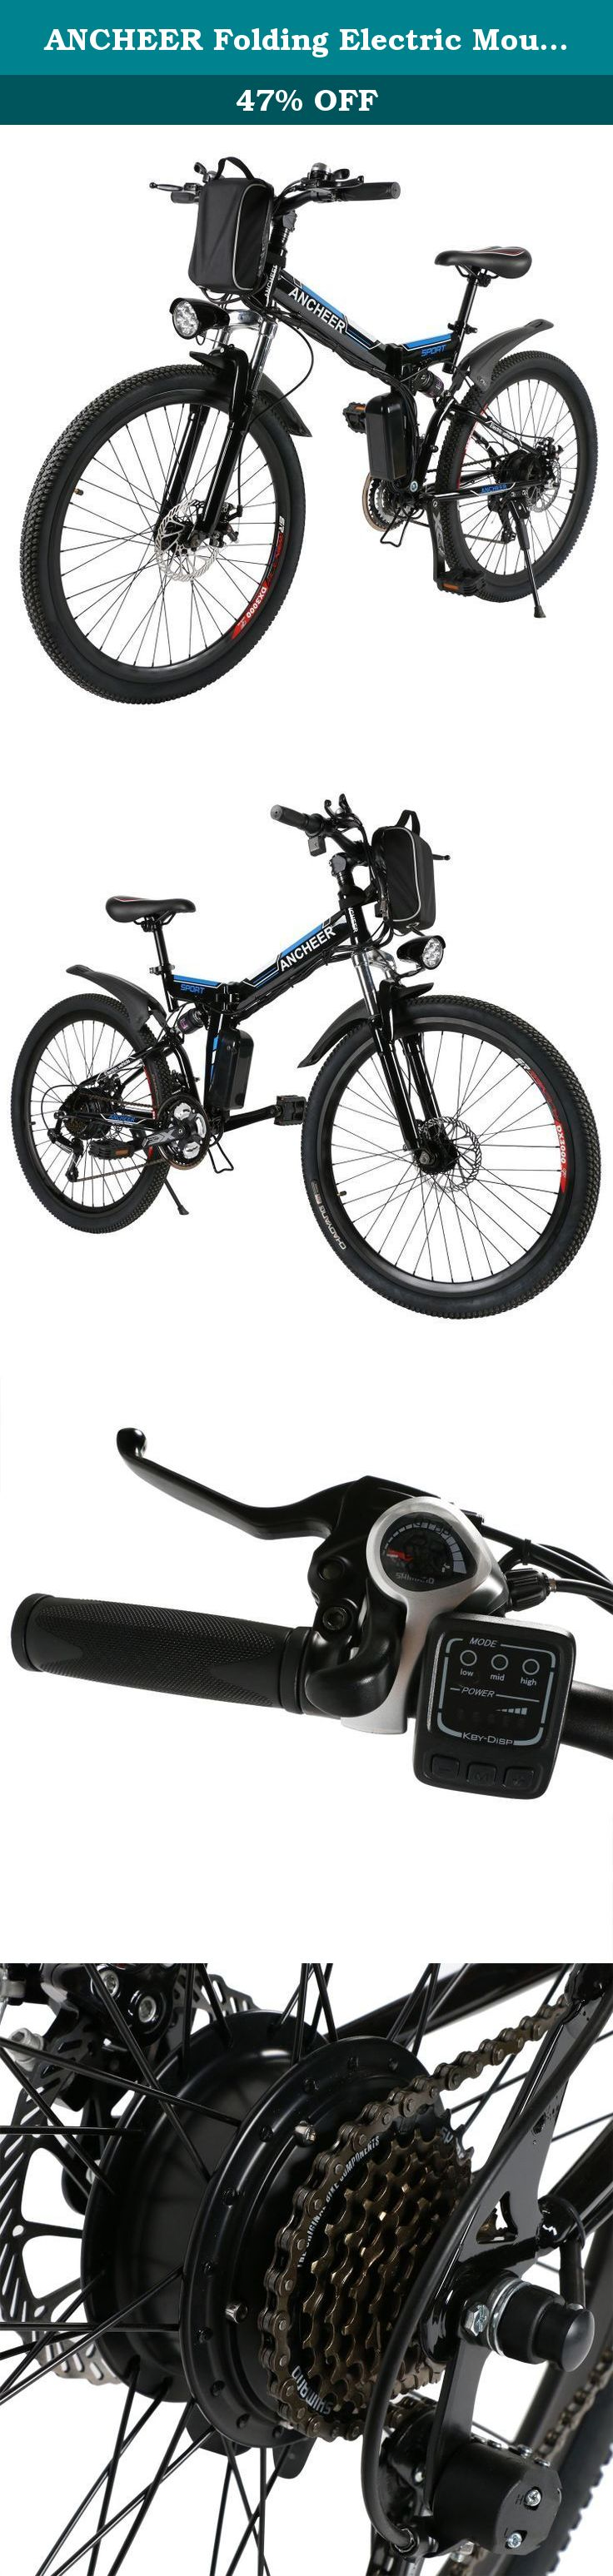 cf85dbc6093 ANCHEER Folding Electric Mountain Bike with 26 Inch Wheel, Removable Lithium-Ion  Battery (36V 250W), Premium Full Suspension and Shimano Gear.